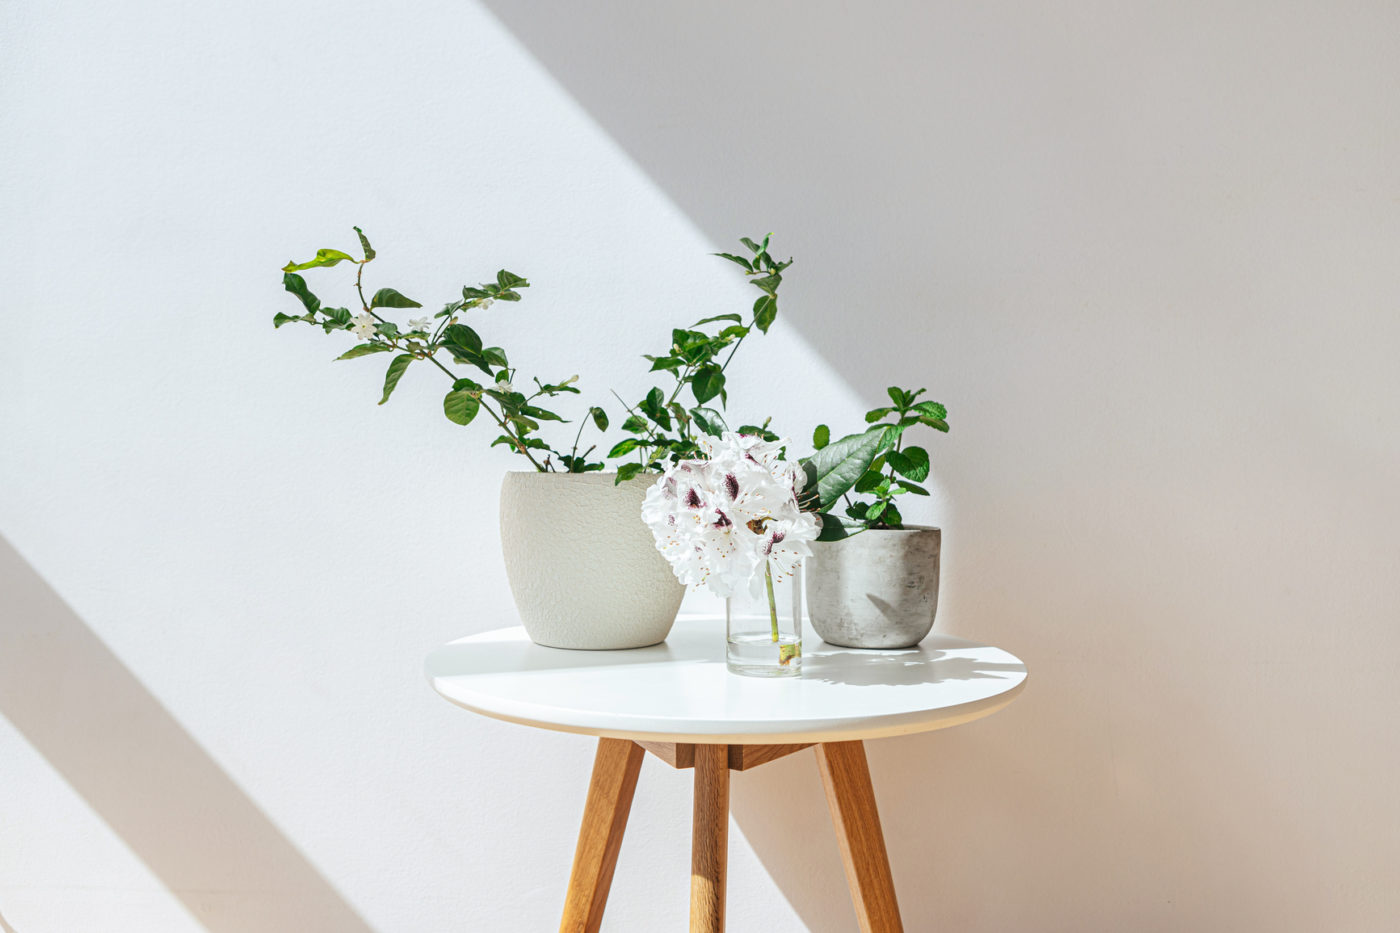 flowers in vases on white tabletop with wooden legs